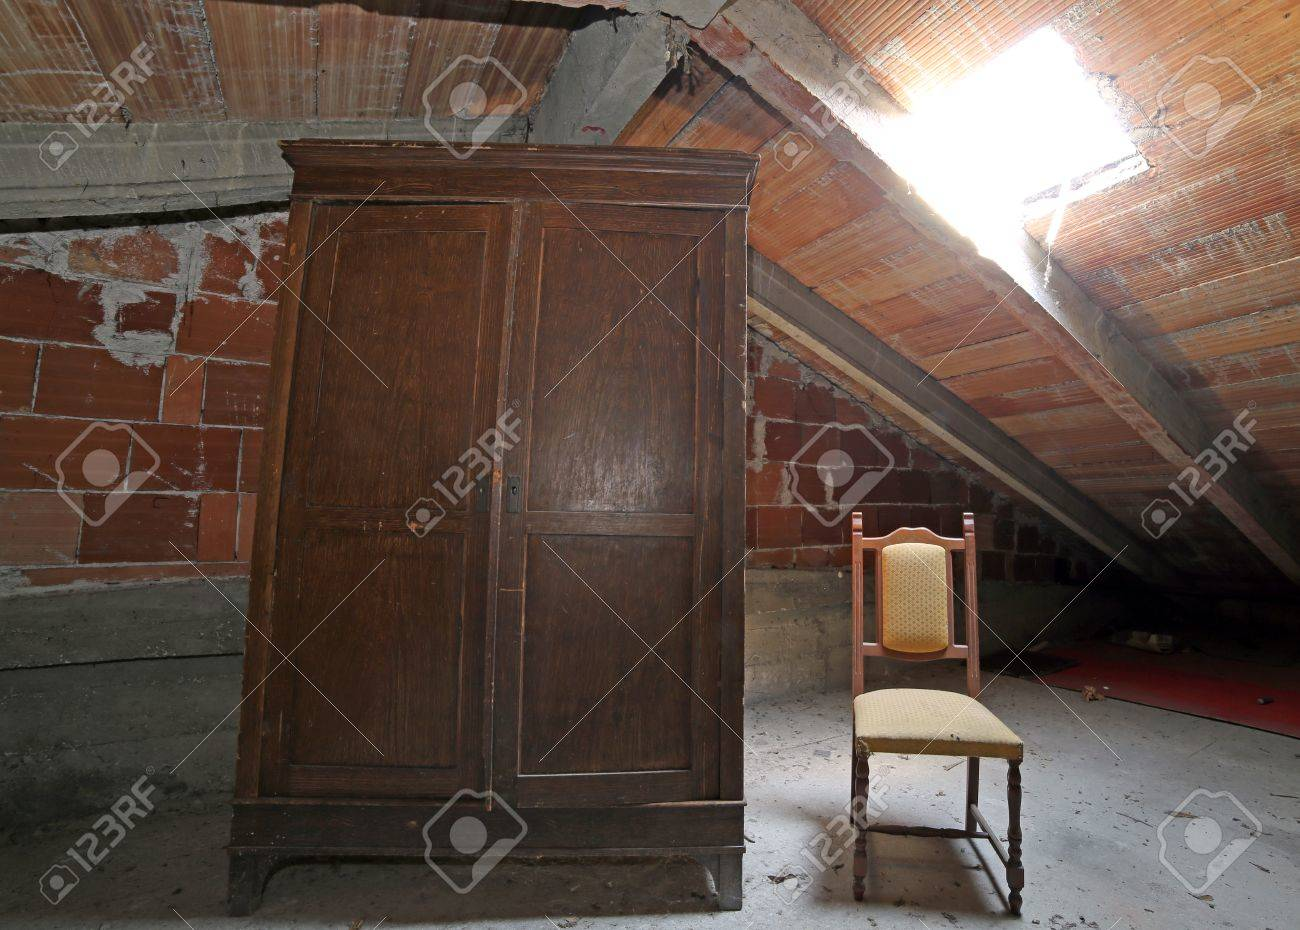 Empty room with chair violin and sheet music on floor photograph - Abandon Chair Old Wooden Wardrobe And An Antique Chair In The Dusty Attic